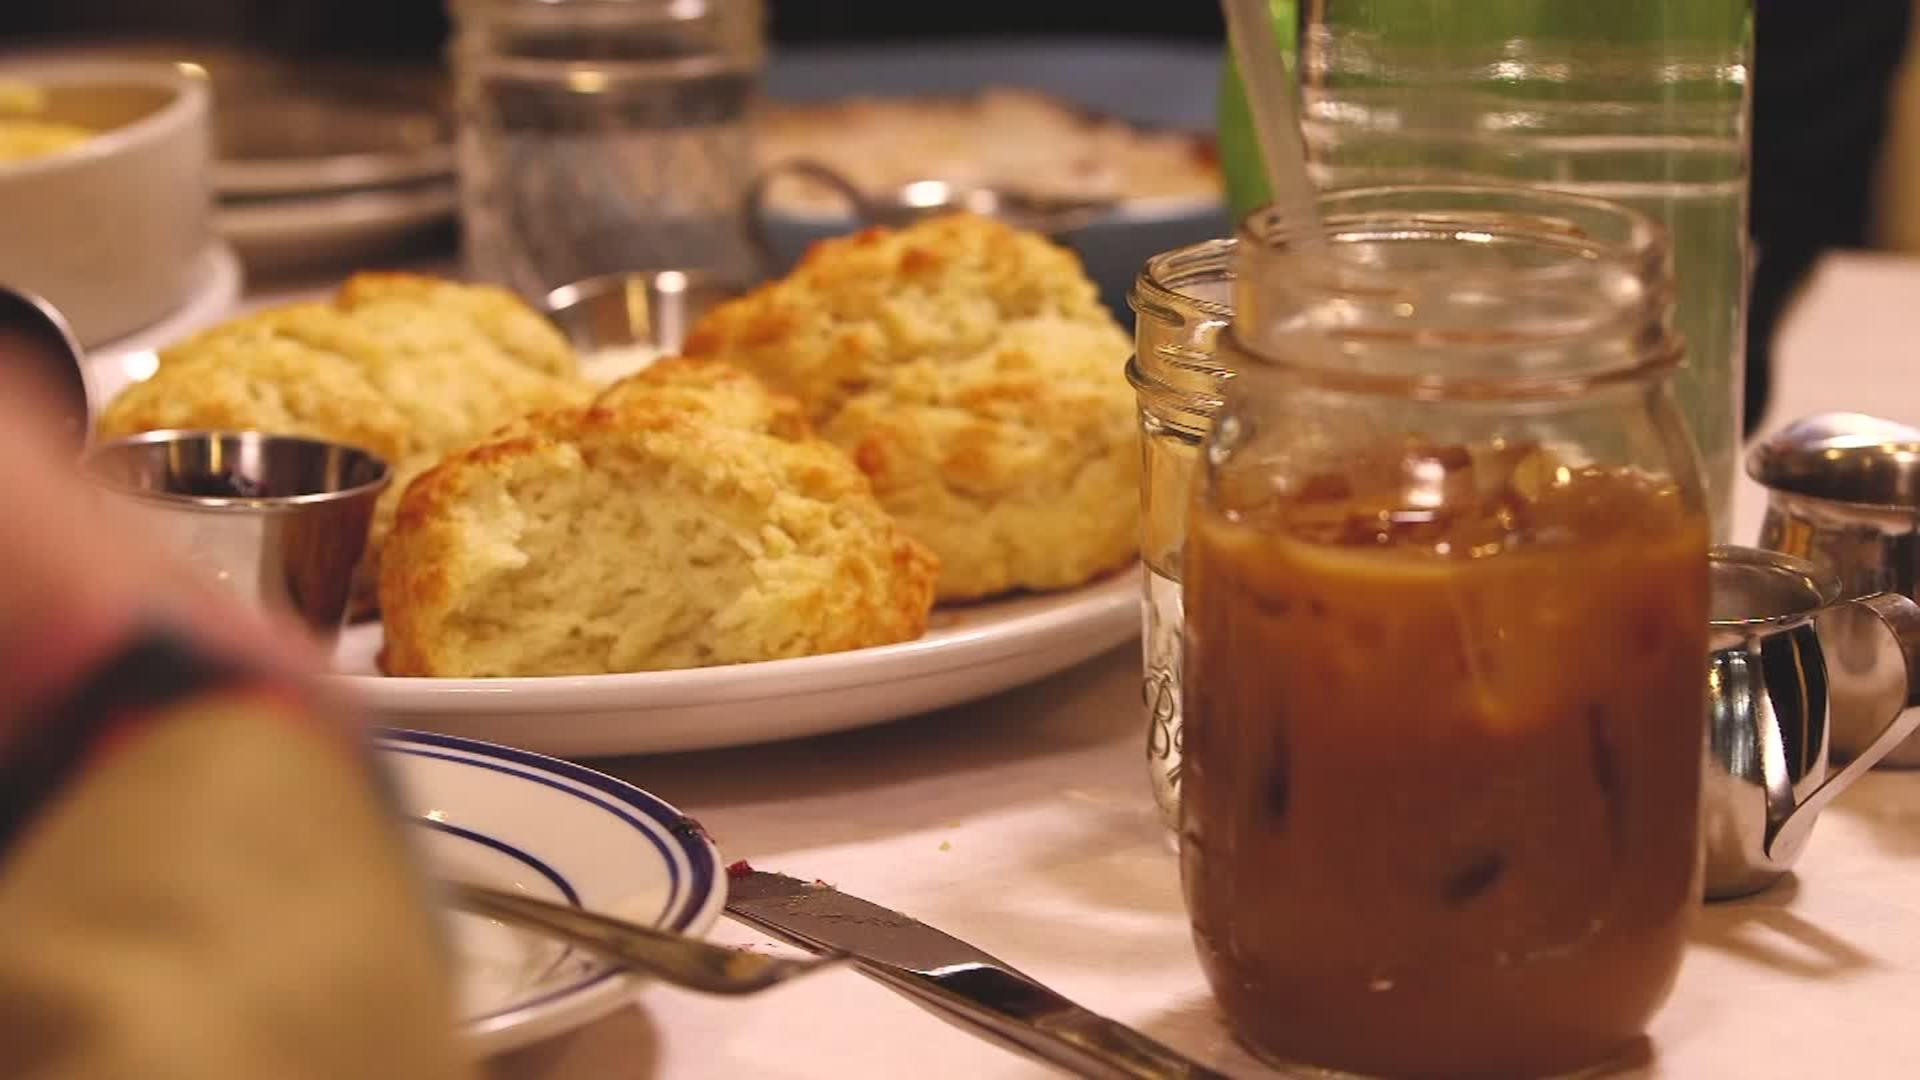 & How to make a perfect buttermilk biscuit | CNN Travel